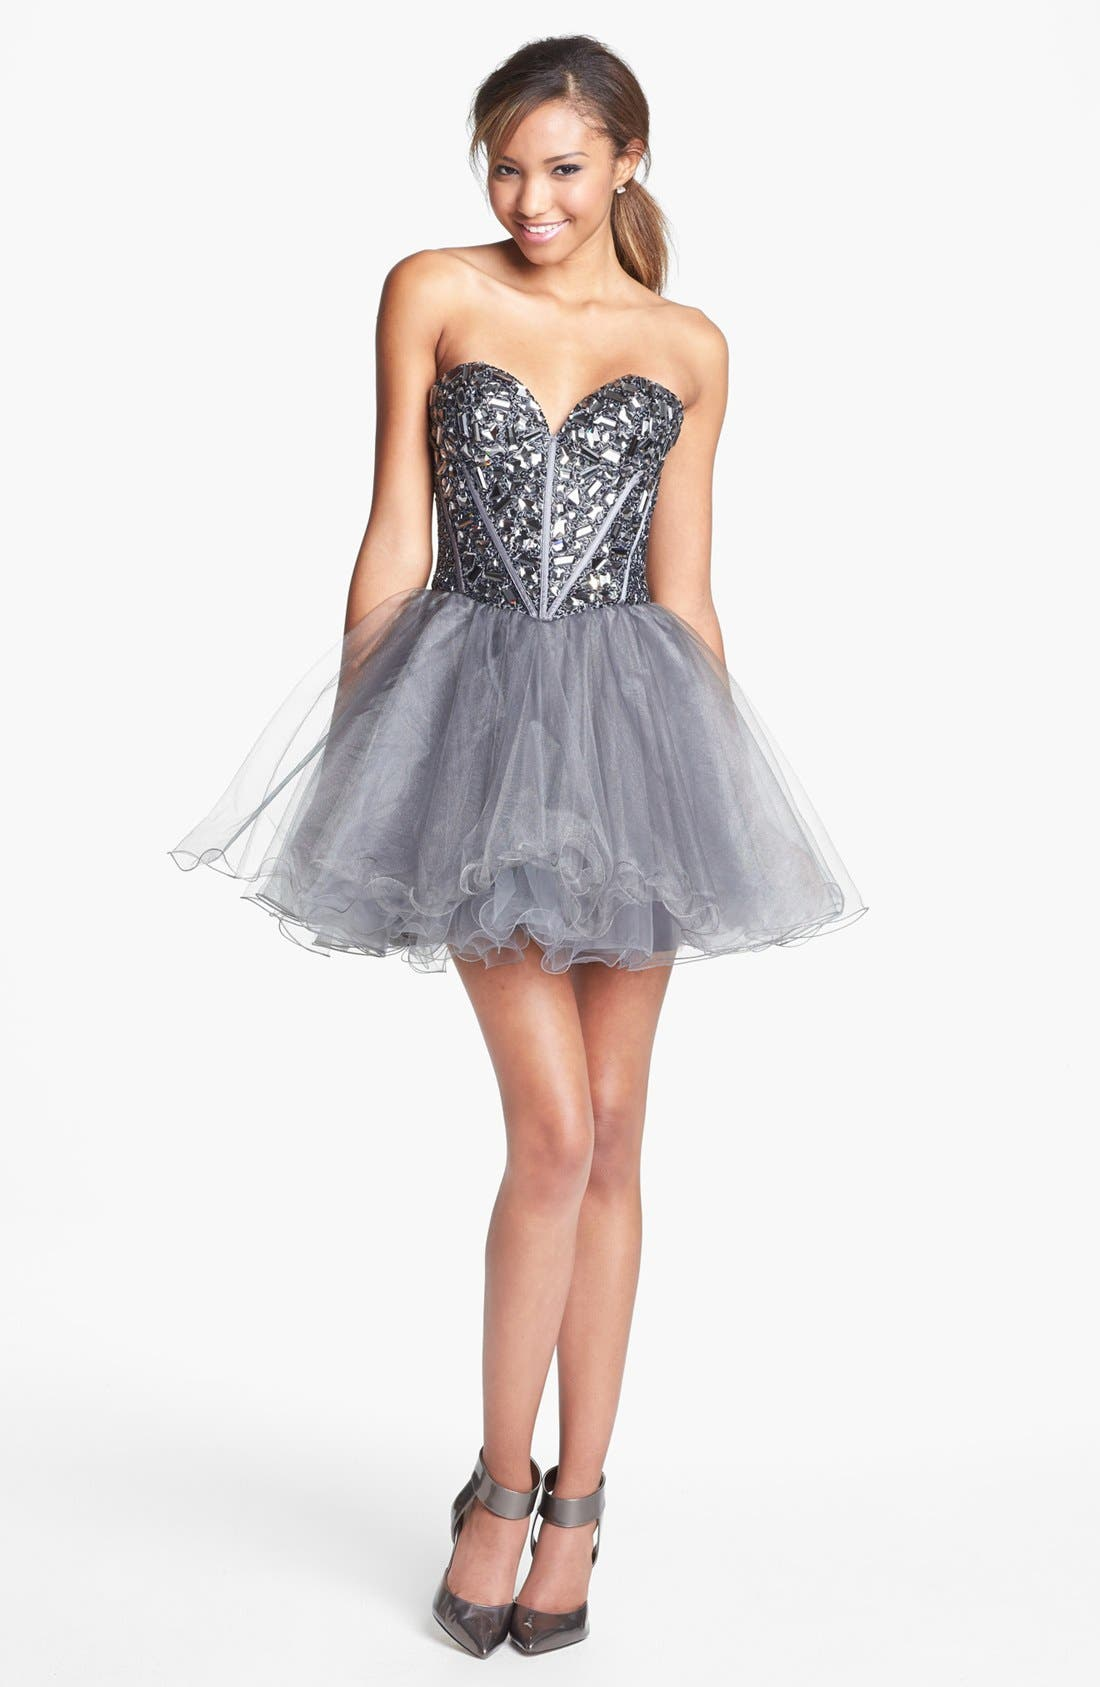 Alternate Image 1 Selected - Sherri Hill Embellished Tulle Fit & Flare Dress